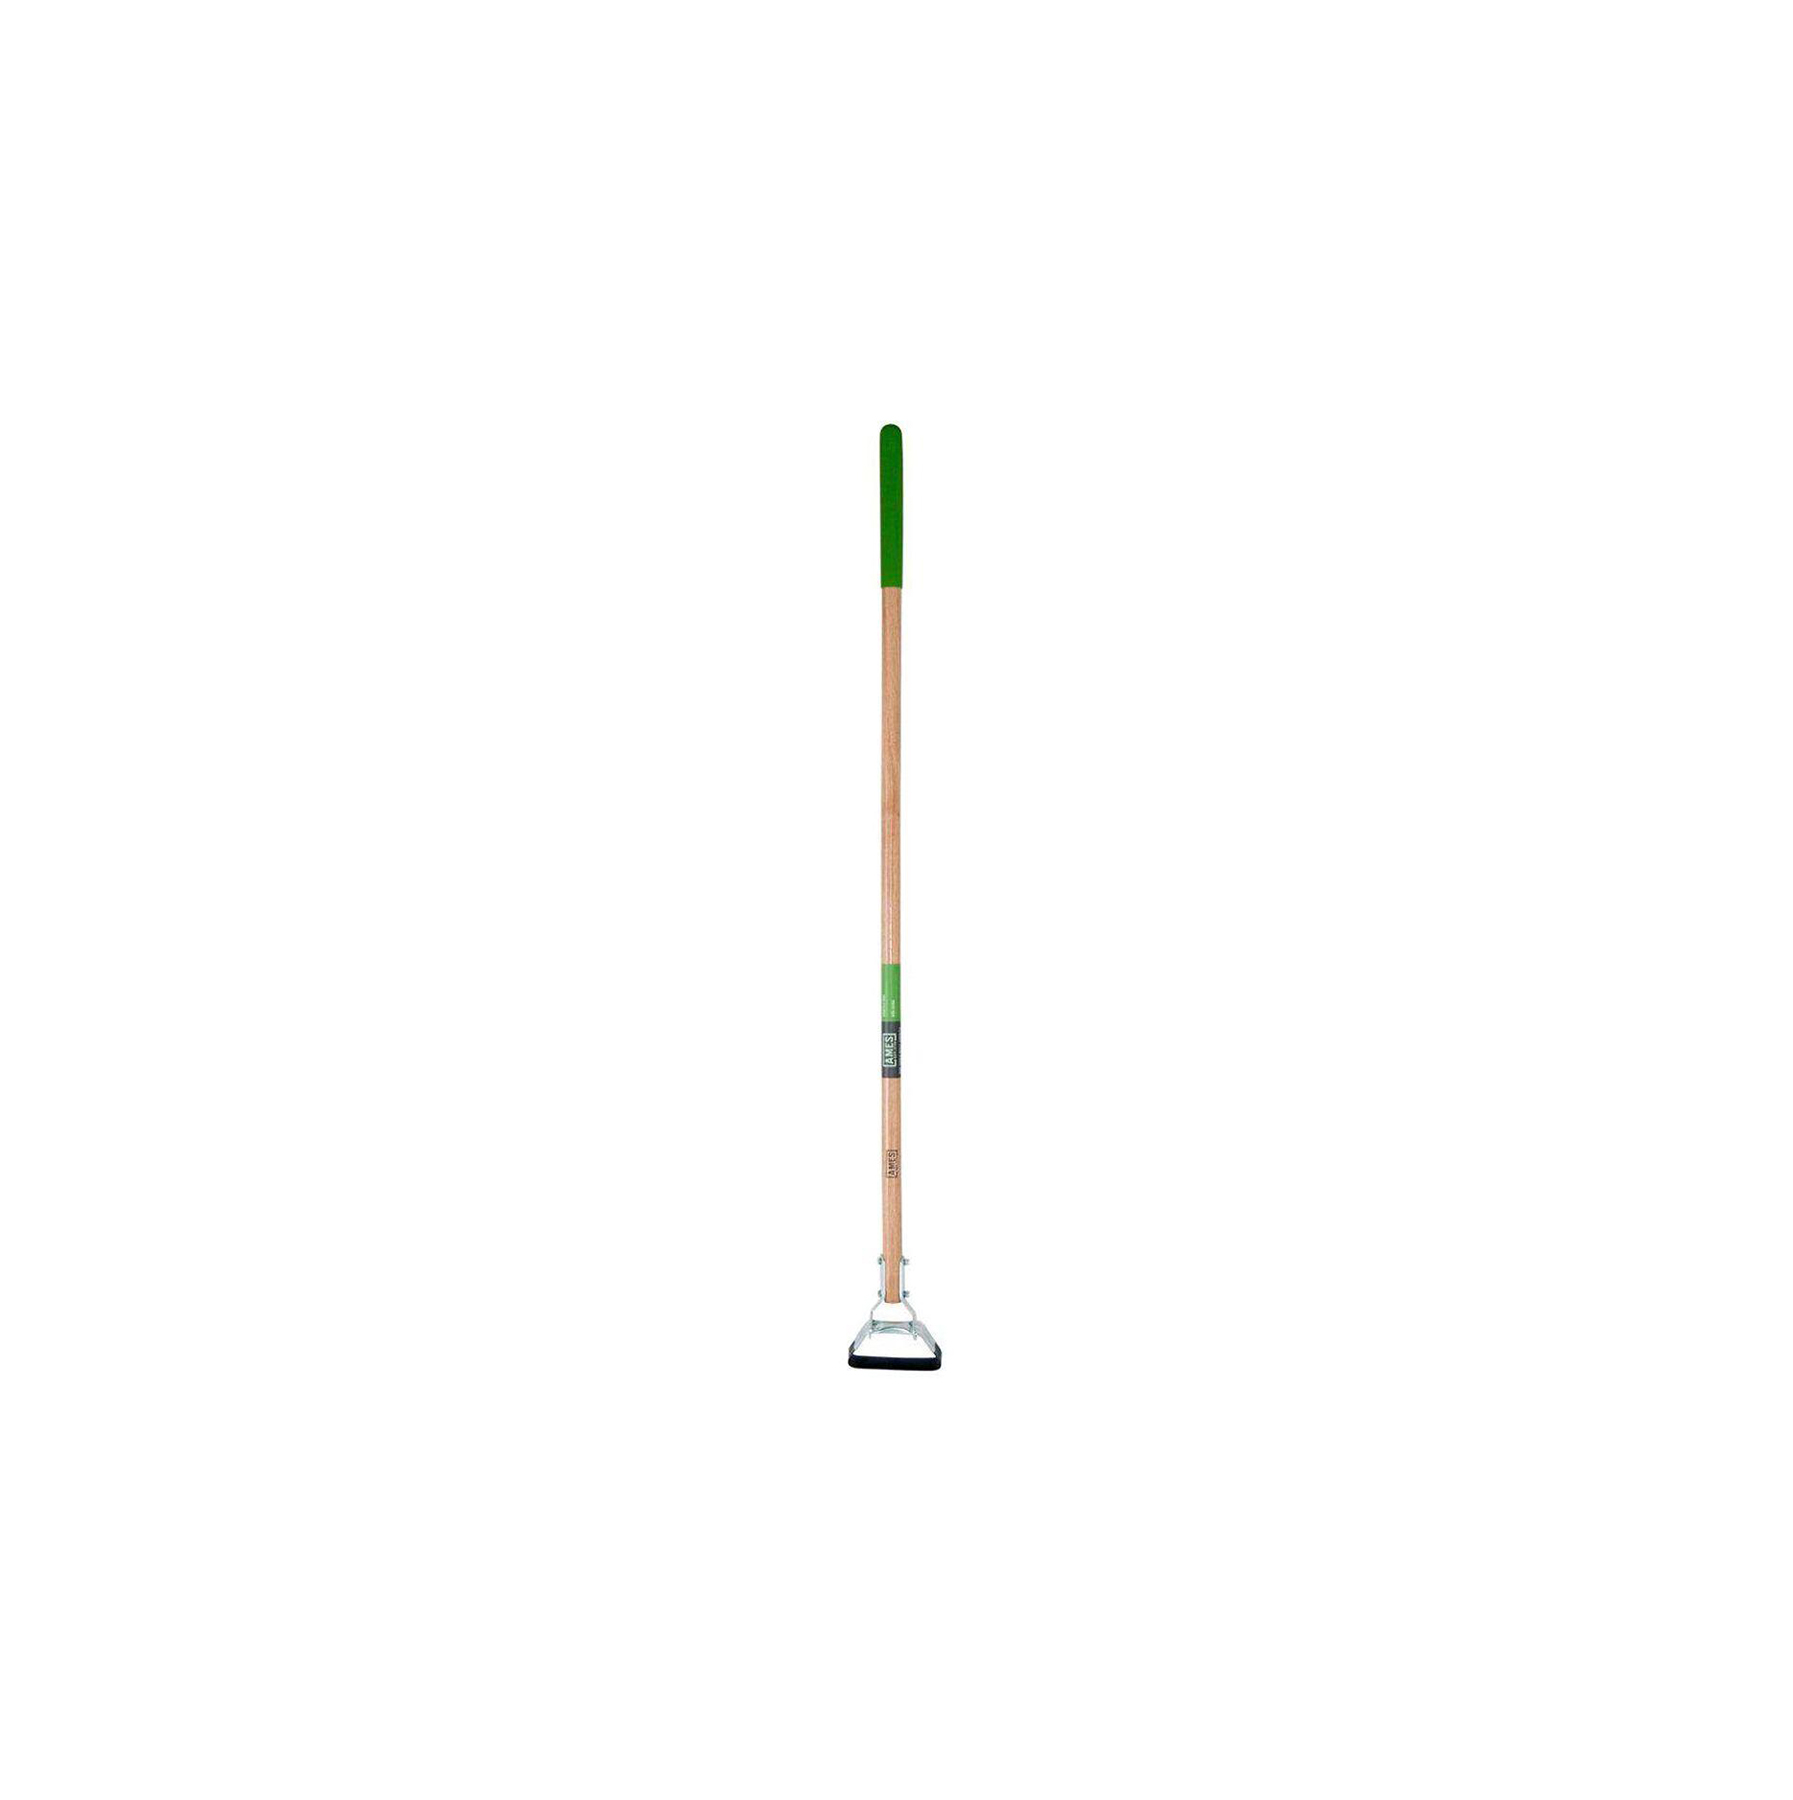 Ames 54 in. Wood Handle Action Hoe